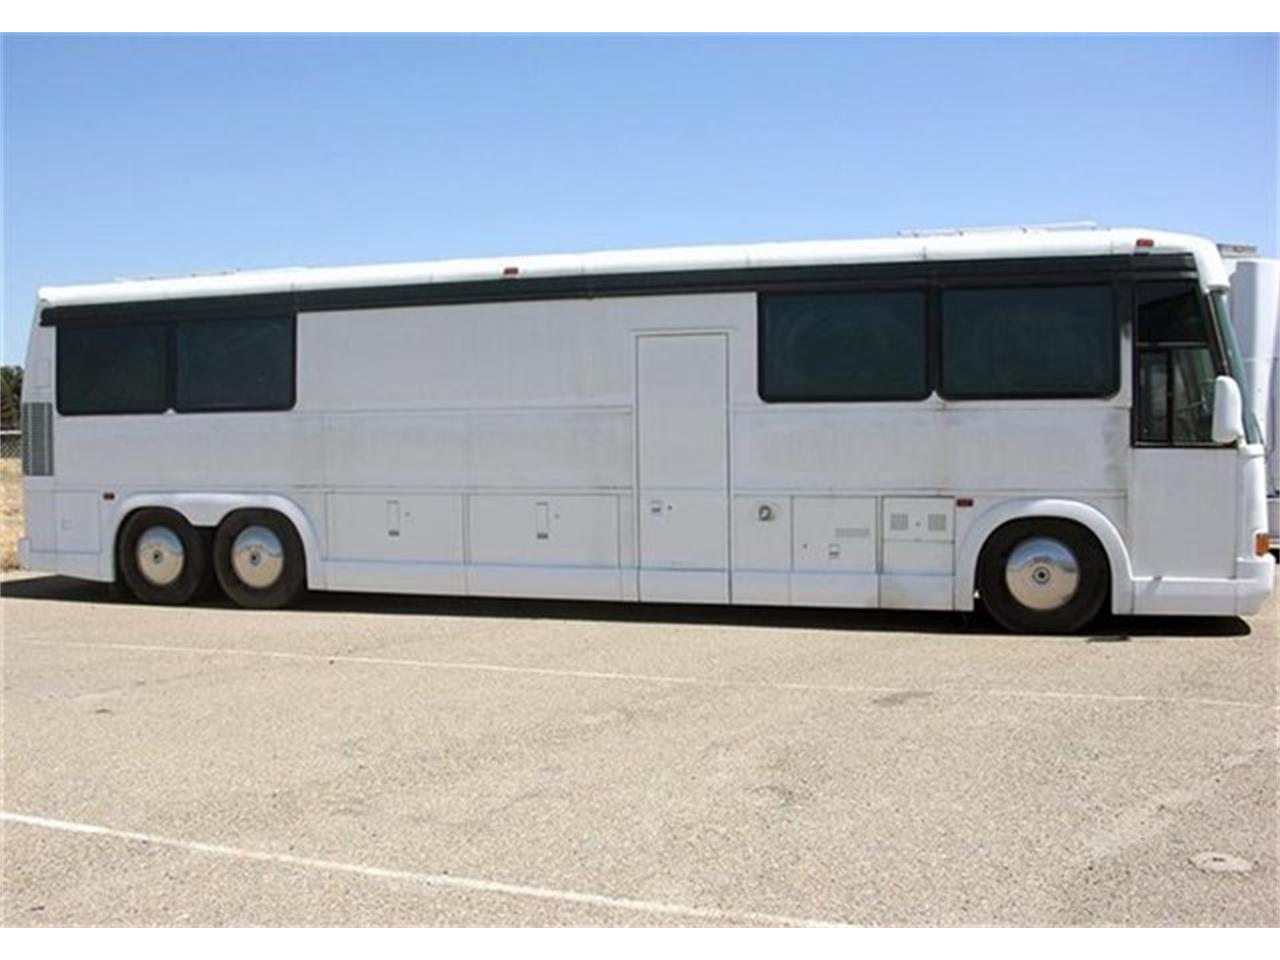 1991 Motor Coach Industries Recreational Vehicle for sale in Scotts Valley, CA – photo 4